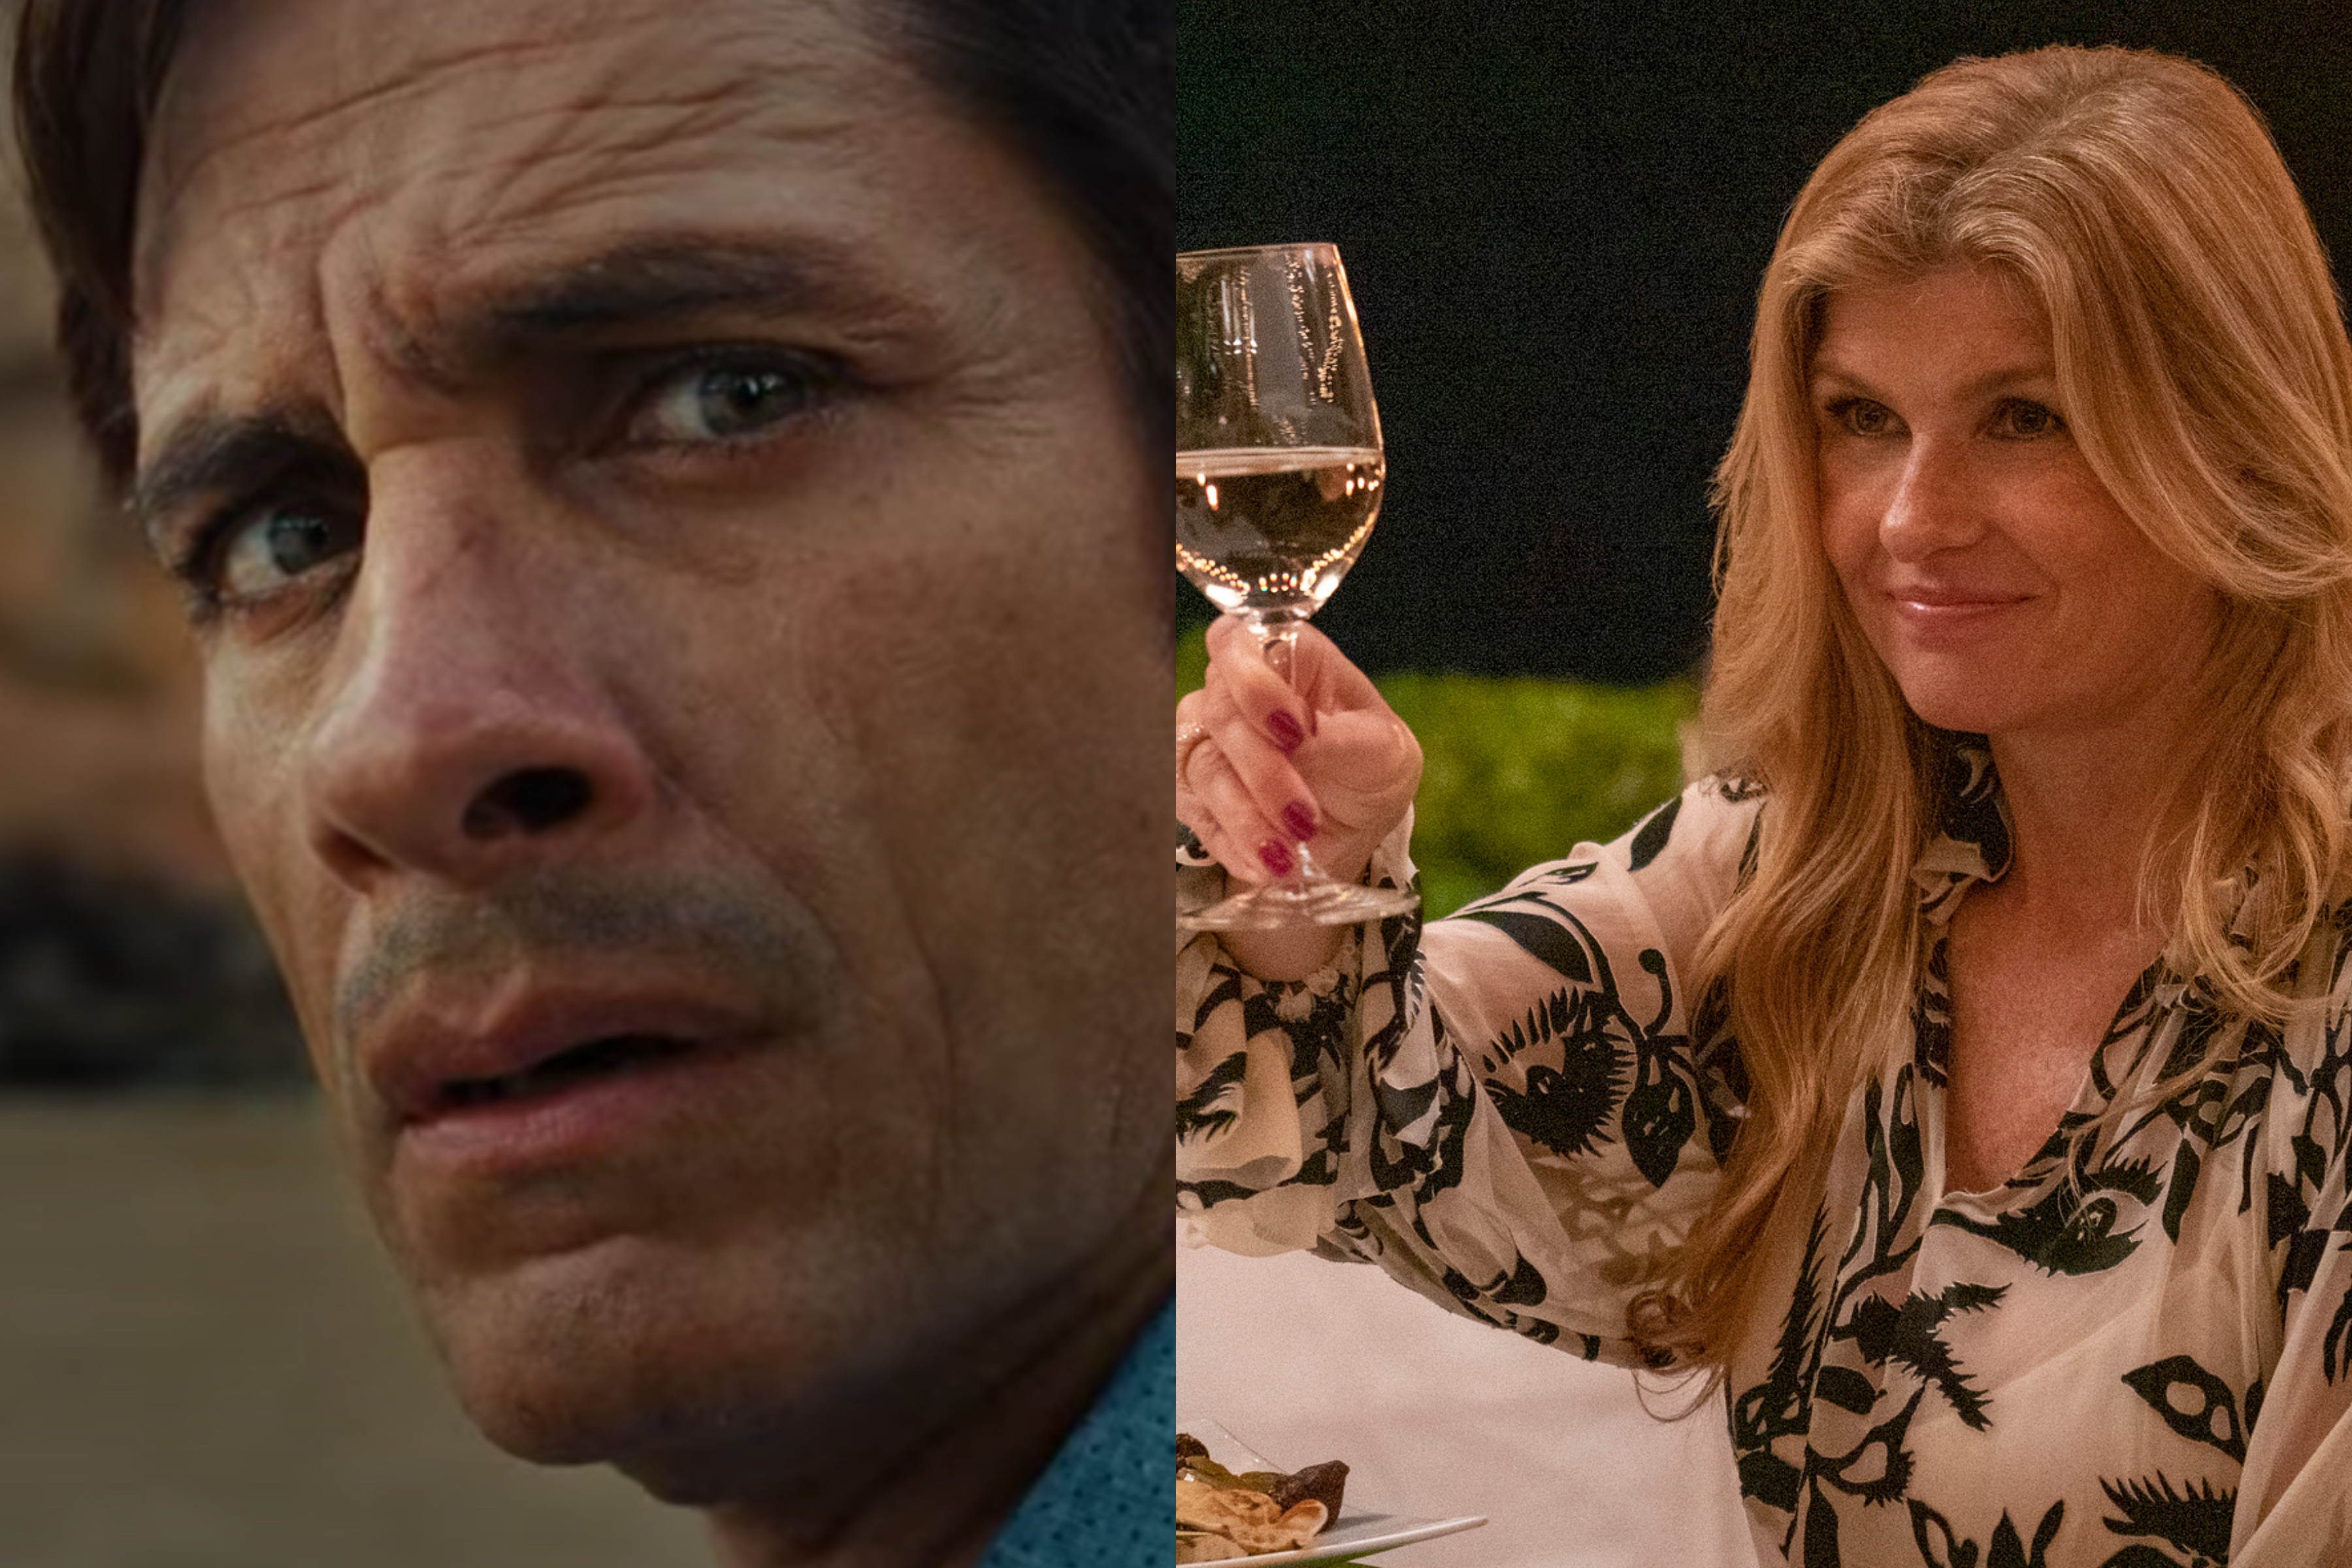 Gael Garcia Bernal, in old-age makeup, stares at something off-camera, while Connie Britton toasts someone with a glass of white wine, in a diptych of two images.